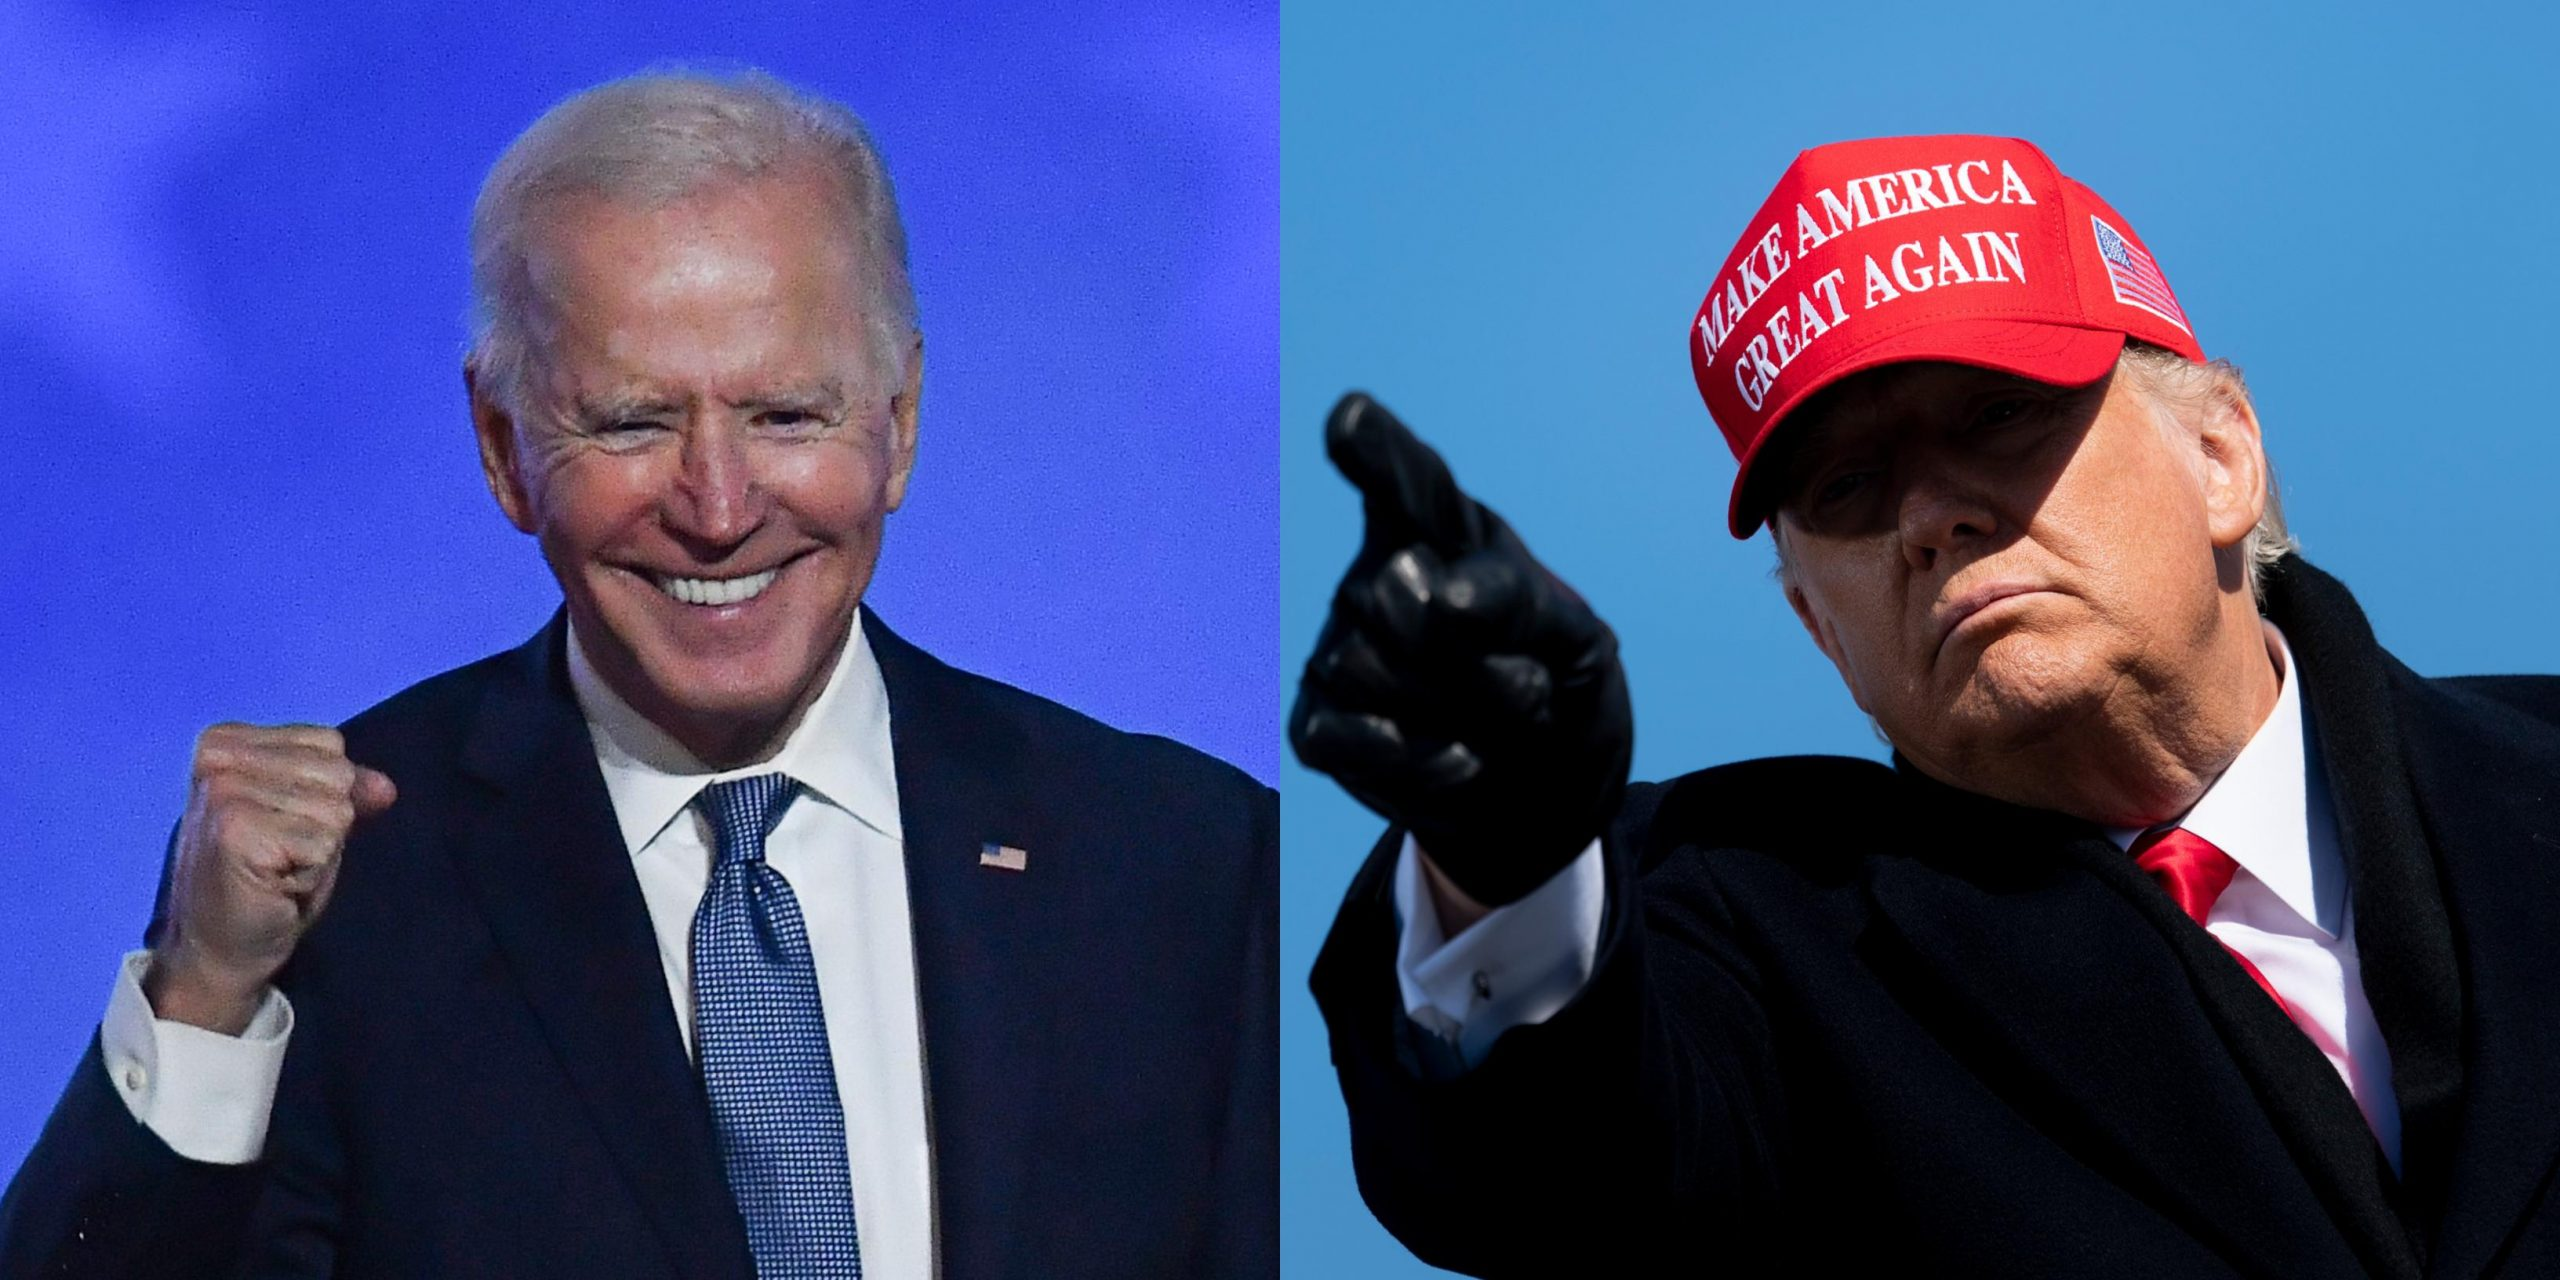 Trump says he'll leave the White House if electoral college votes Biden